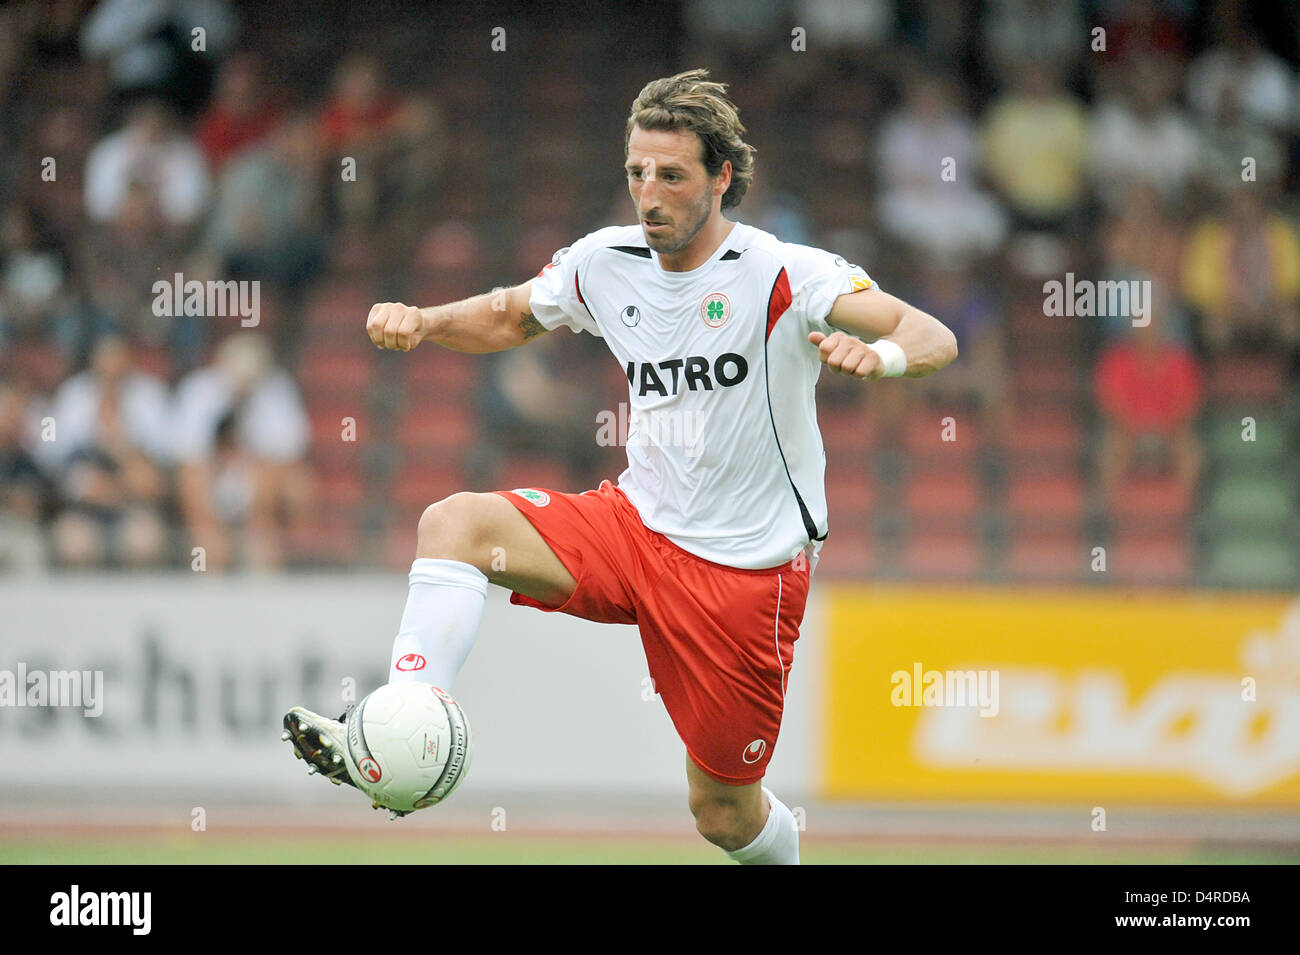 Oberhausen?s Dimitrios Pappas leads the ball during the Bundesliga second division match Rot-Weiss Oberhausen vs - Stock Image